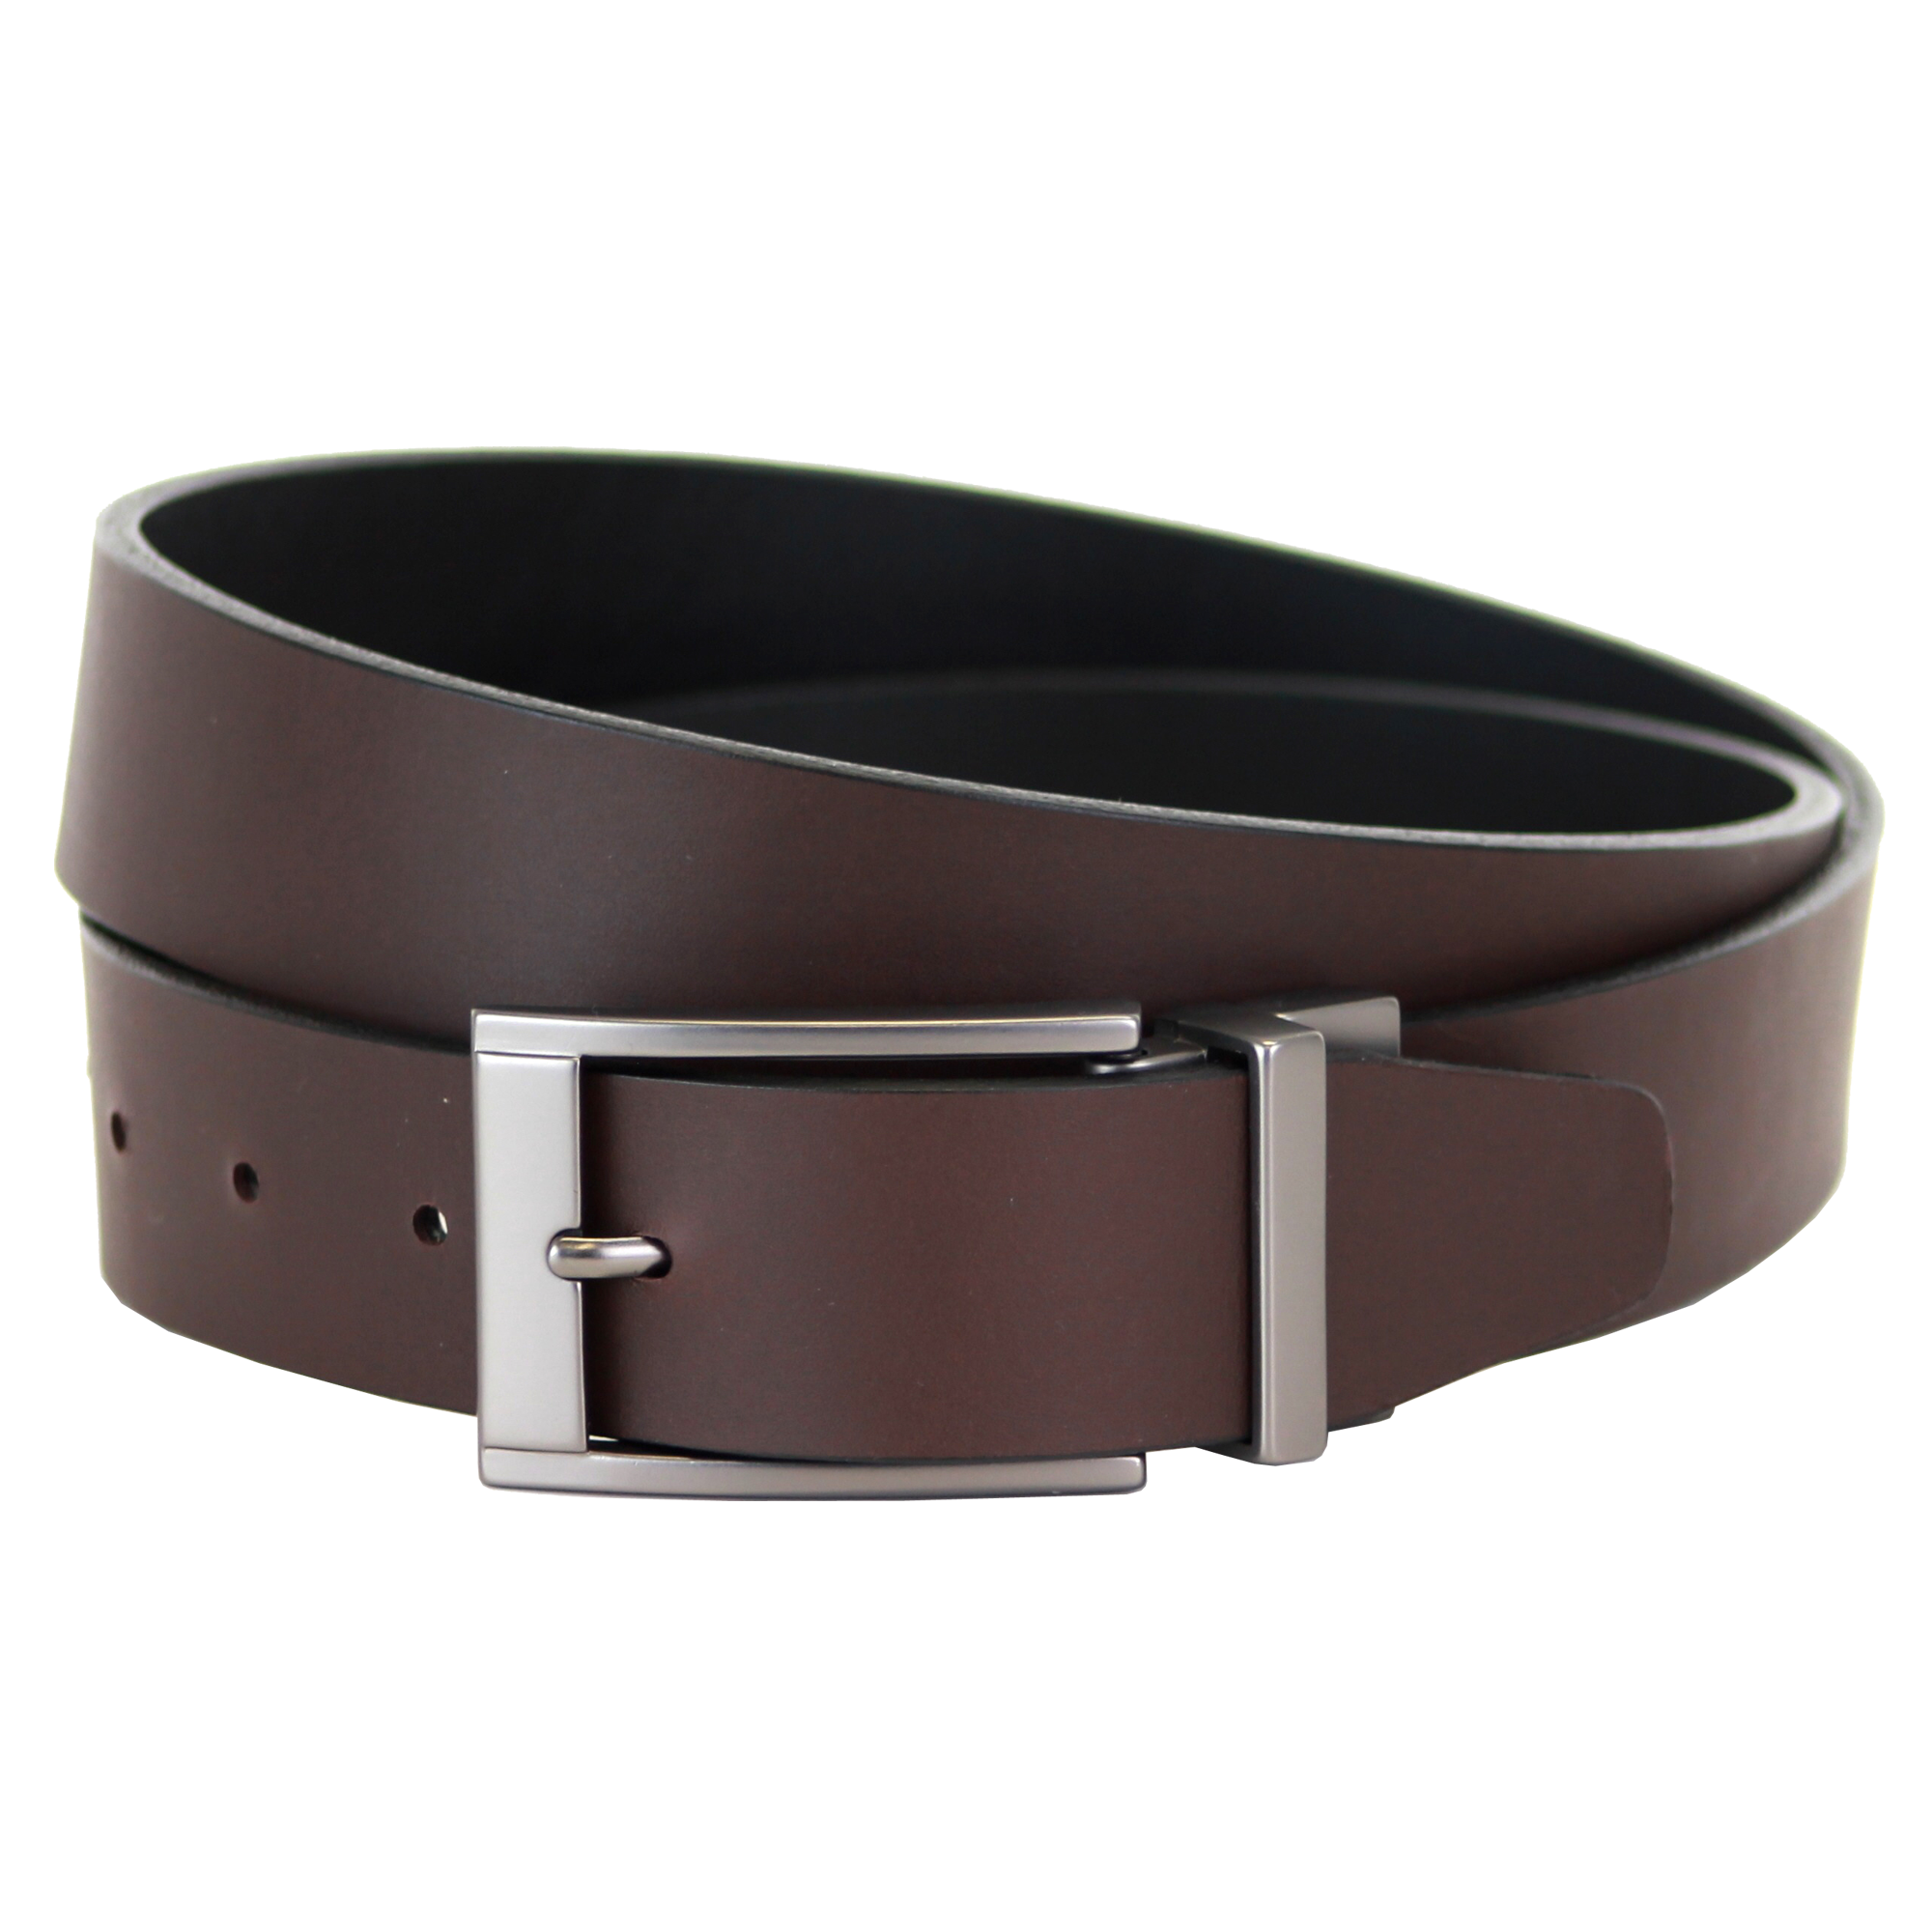 Belt clipart leather belt. Free fashion belts cliparts